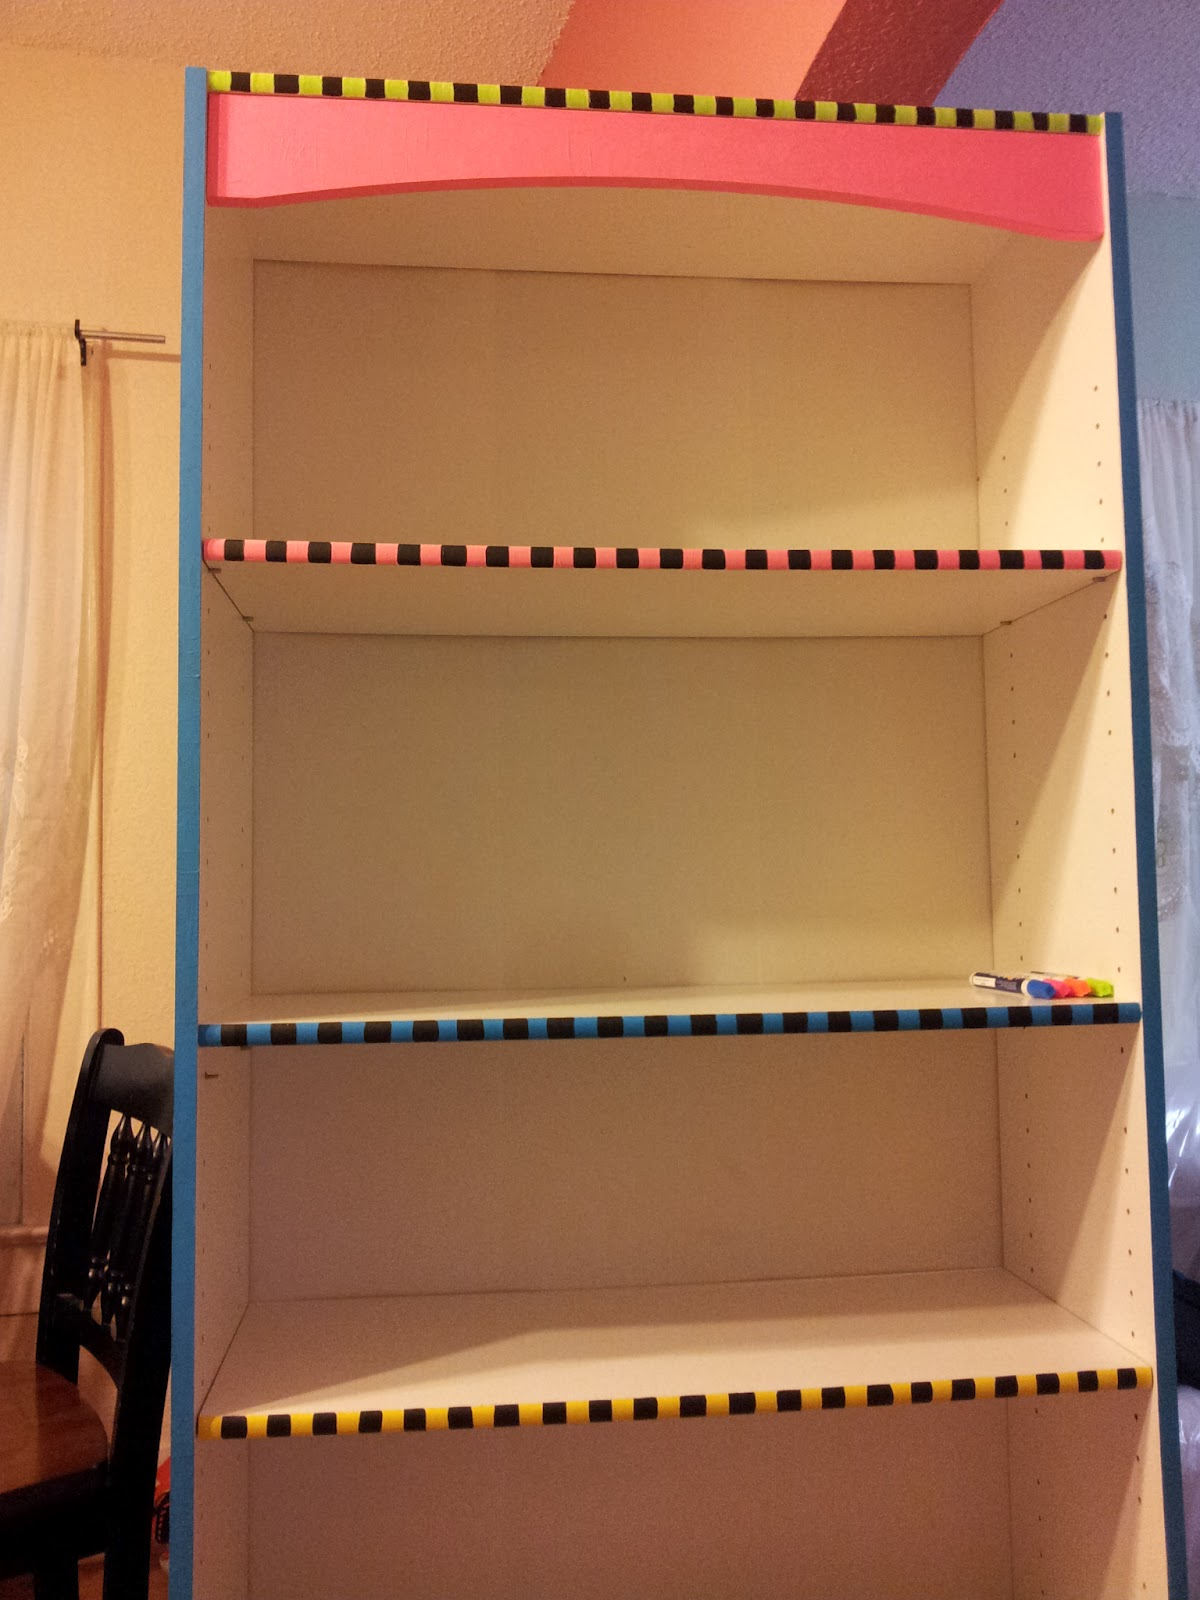 This Is An Old Plain White Bookshelf From My Boys RoomI Decided To Give It A Bit Of Color